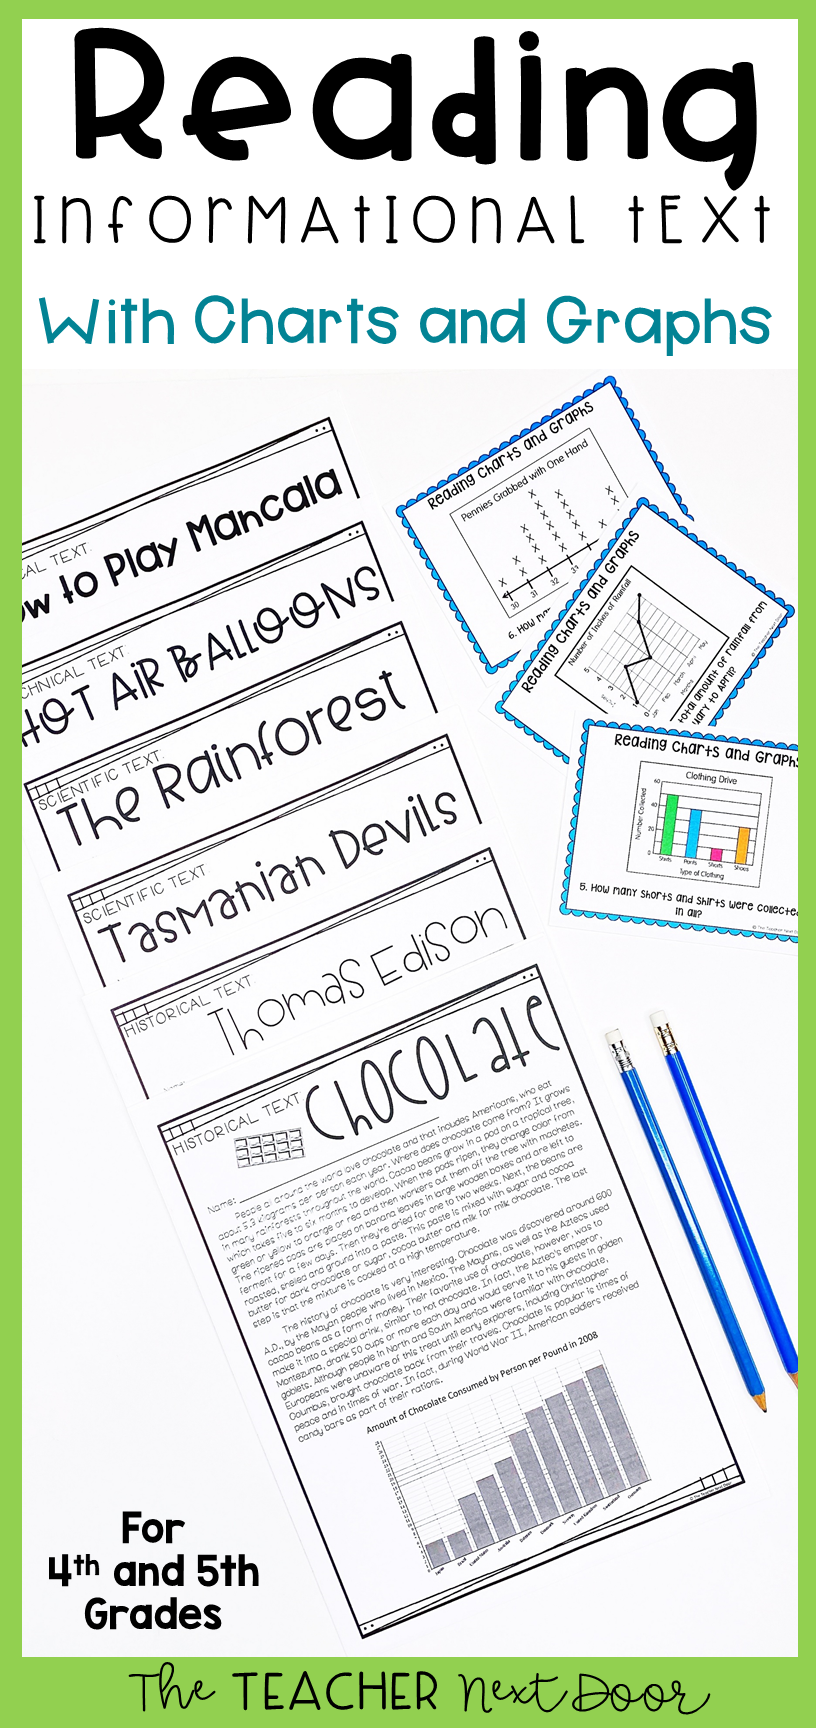 Reading Informational Text With Charts And Graphs For 4th 5th Grades Reading Informational Texts Charts And Graphs Informational Text [ 1728 x 816 Pixel ]